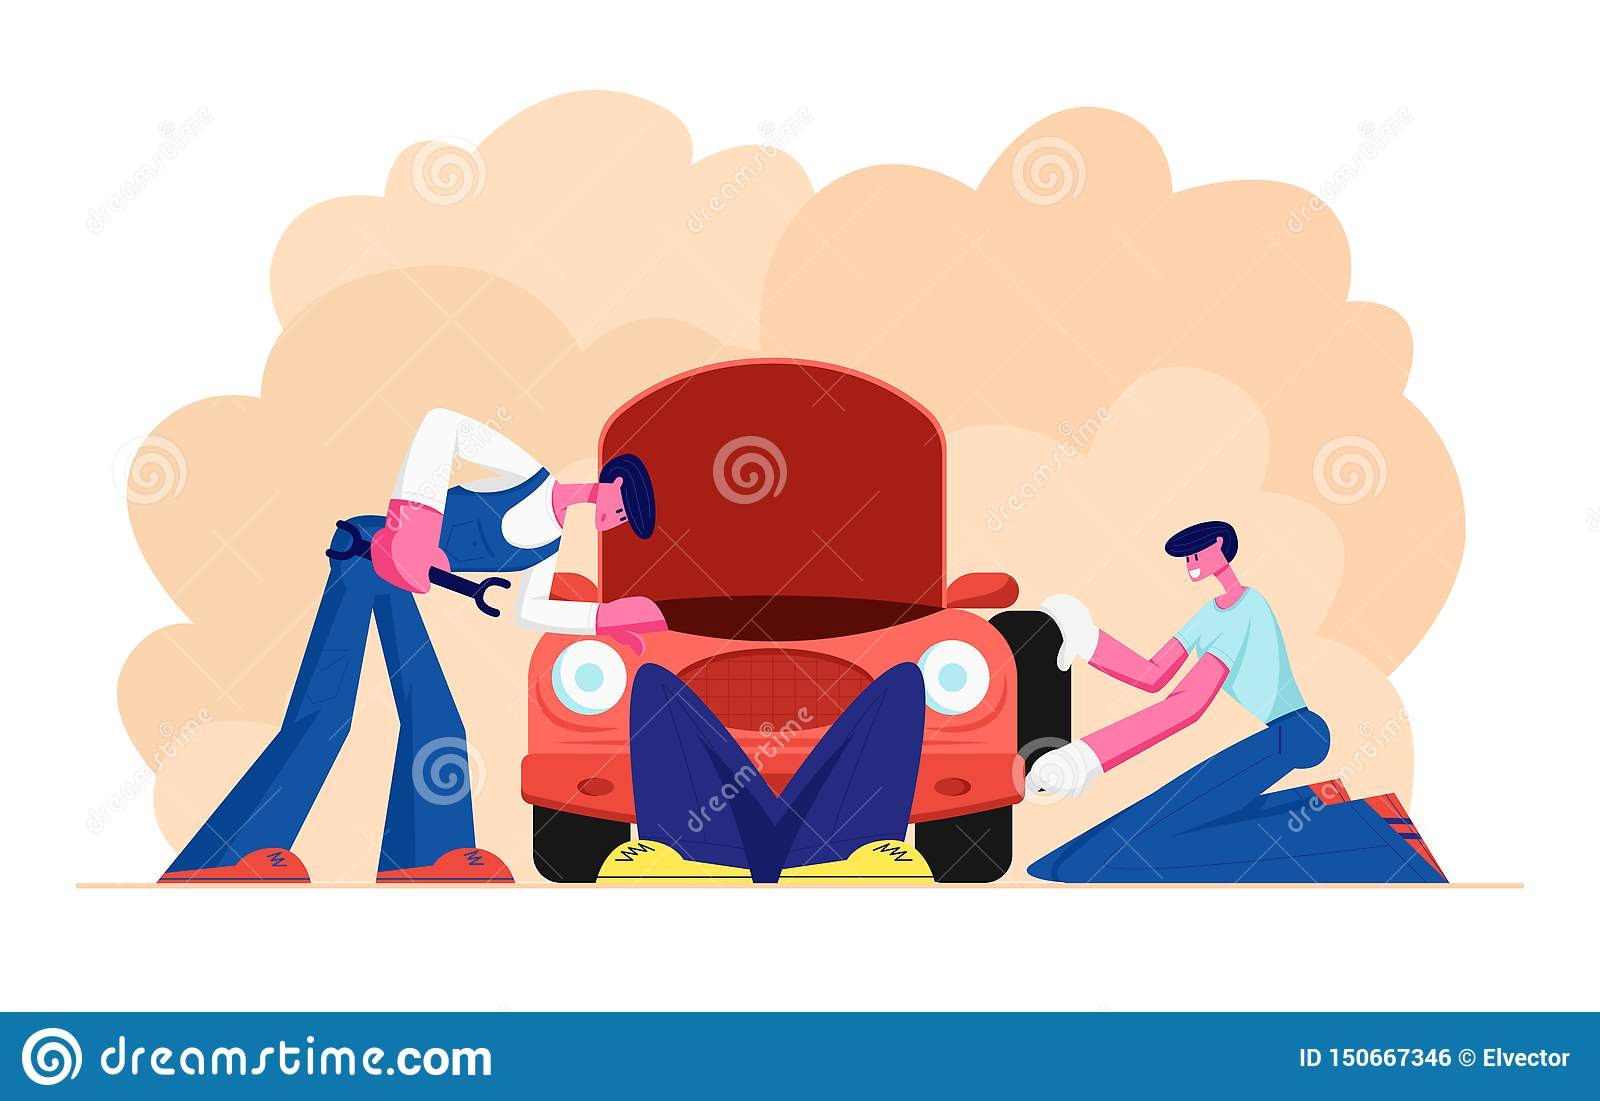 Mechanic Dressed in Blue Overalls Stand near Broken Car with Open Hood Holding Instrument in Hand, Man Lying under Auto